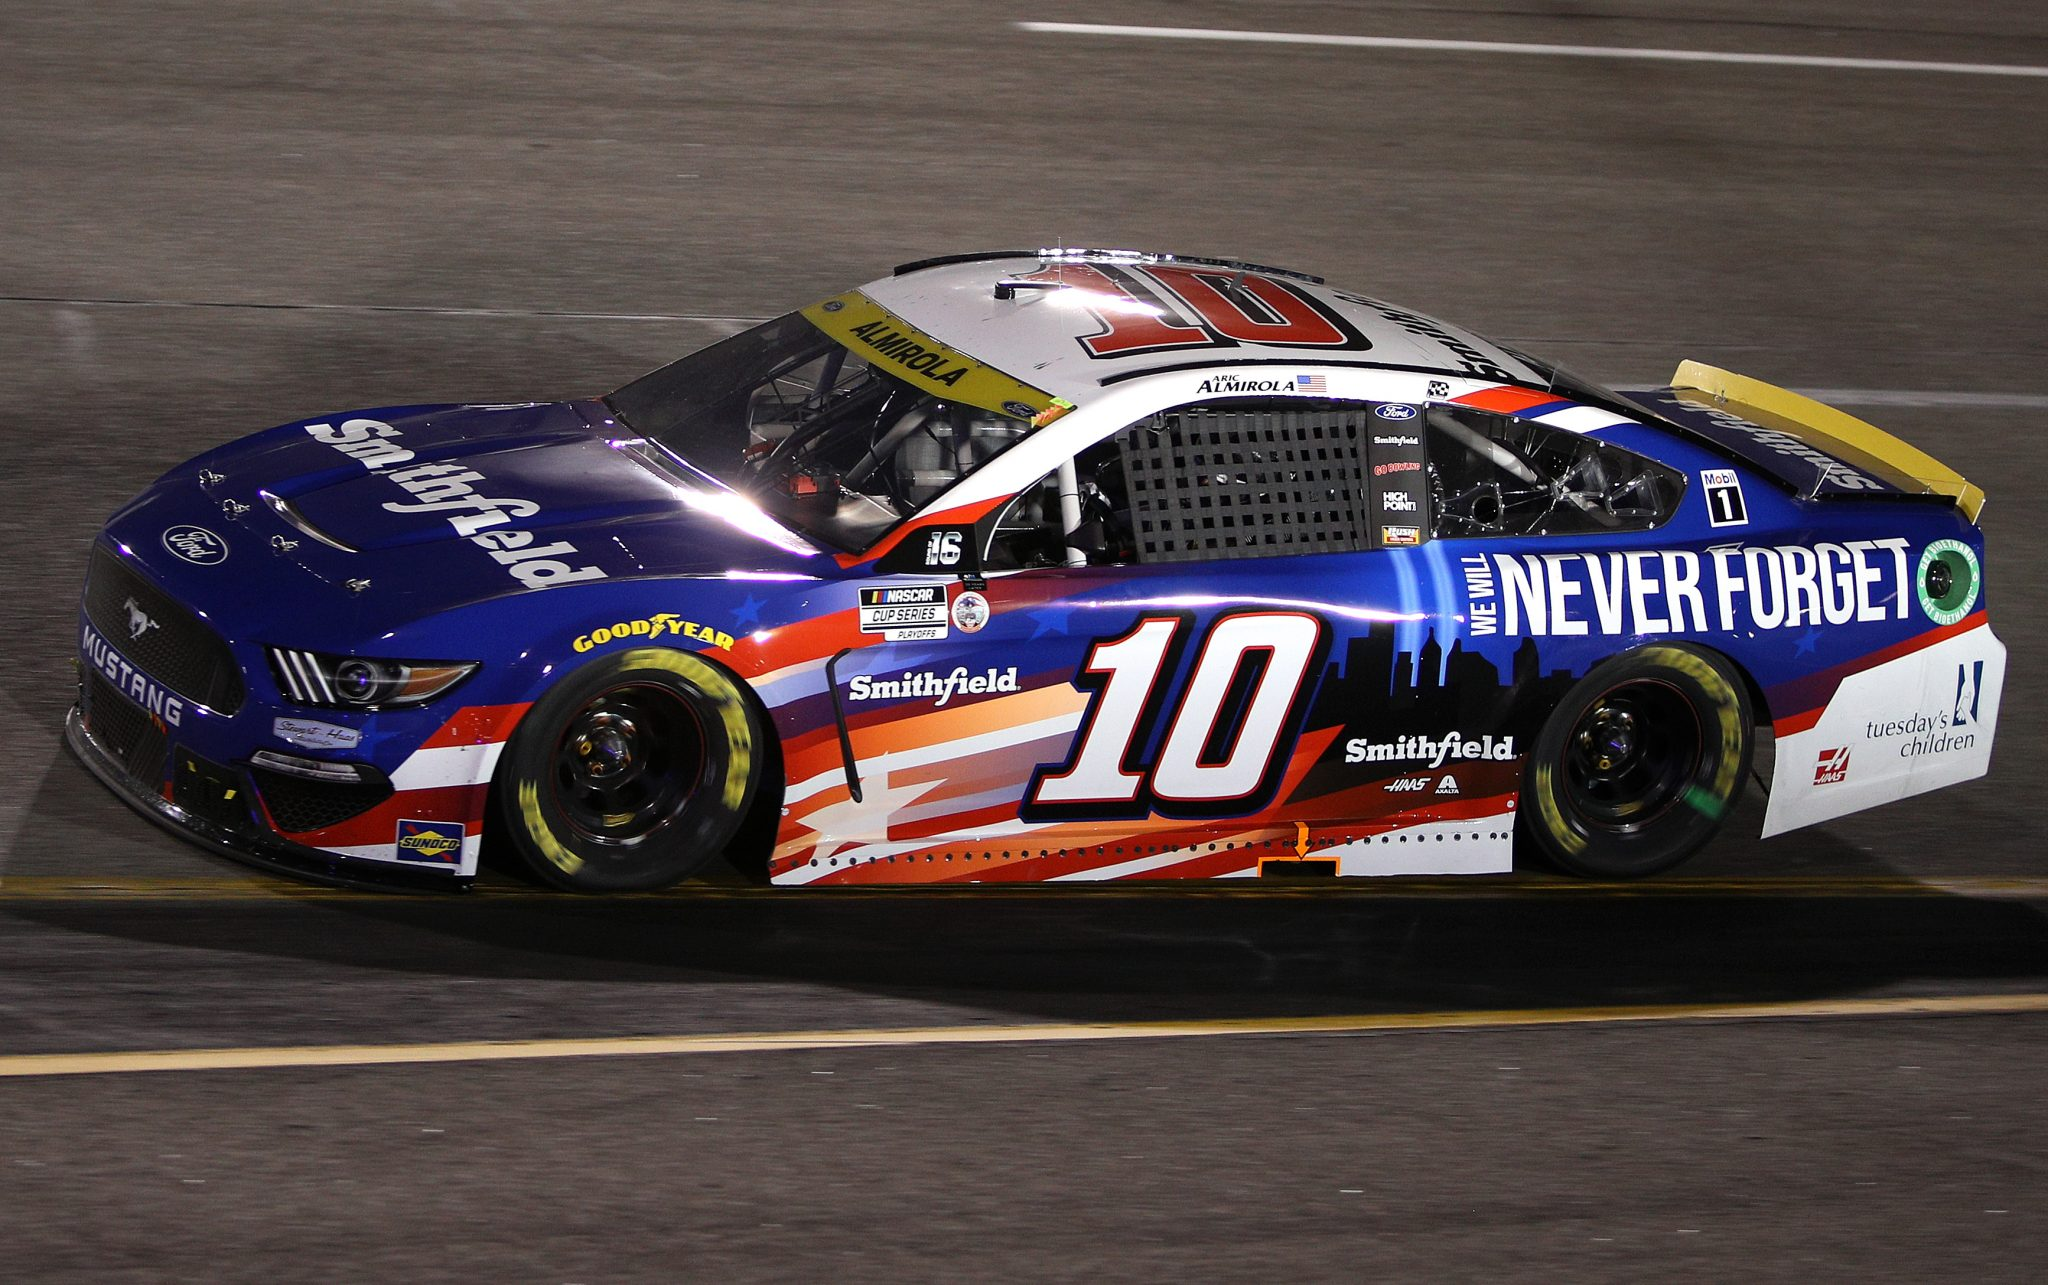 RICHMOND, VIRGINIA - SEPTEMBER 11: Aric Almirola, driver of the #10 Smithfield/Tuesday's Children Ford, drives during the NASCAR Cup Series Federated Auto Parts 400 Salute to First Responders at Richmond Raceway on September 11, 2021 in Richmond, Virginia. (Photo by Sean Gardner/Getty Images)   Getty Images